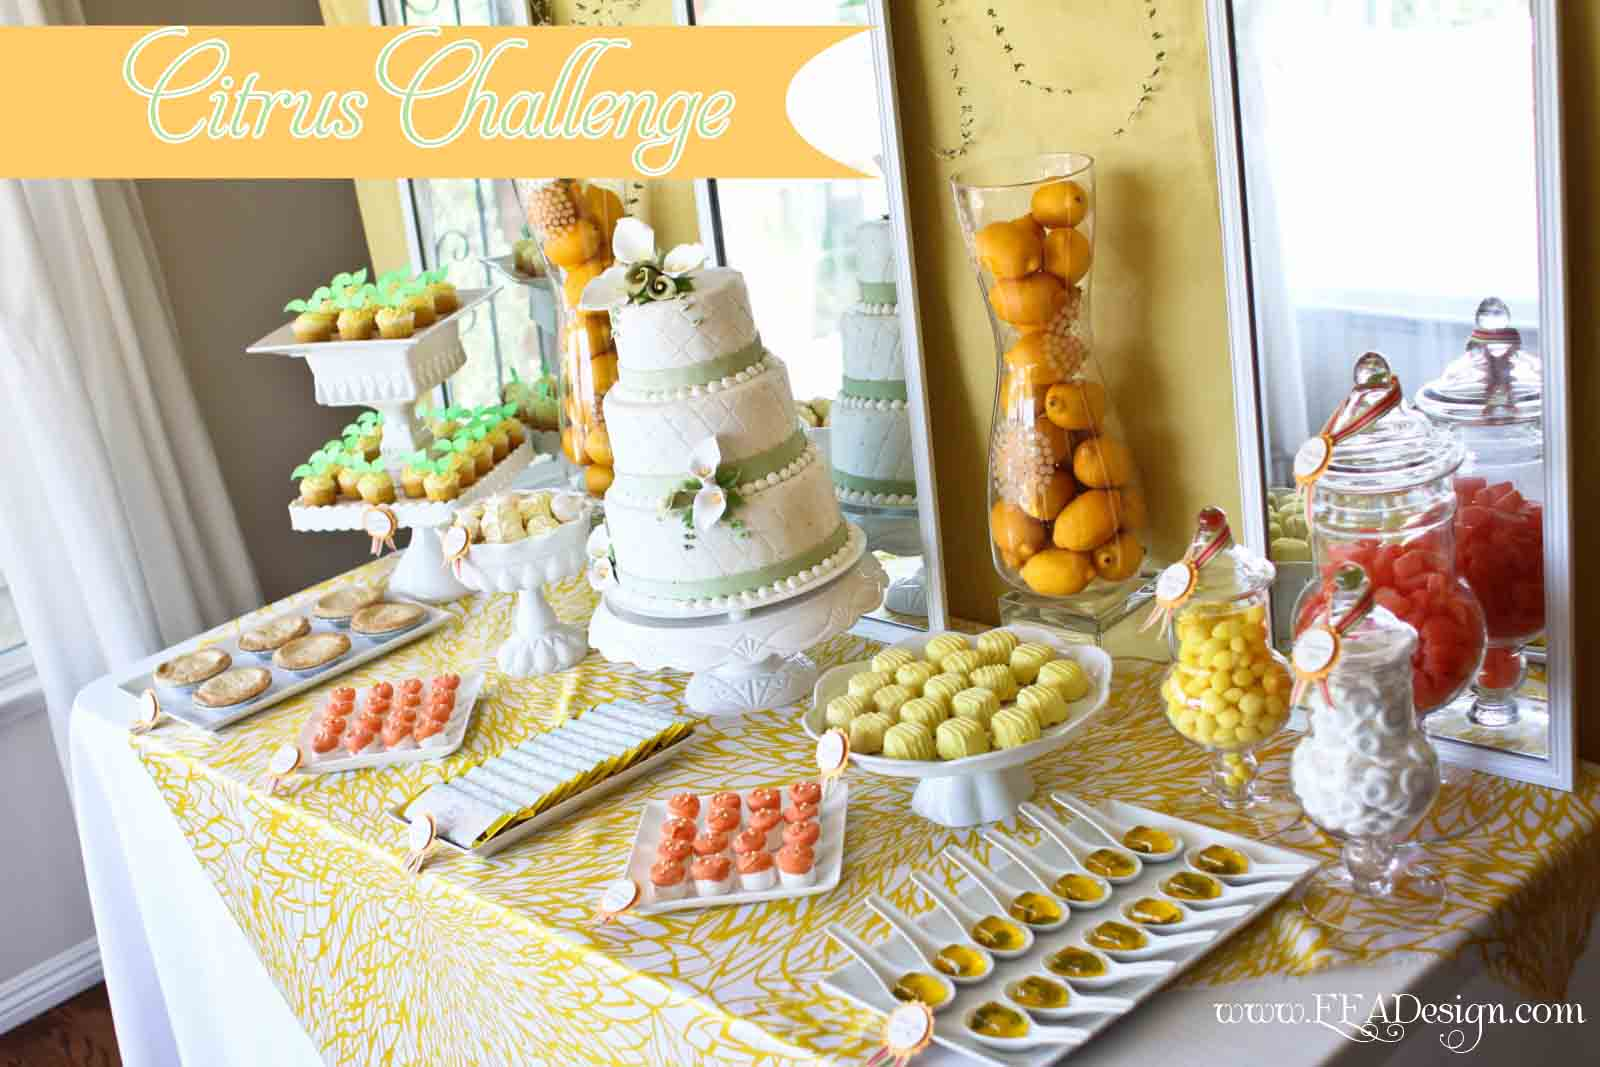 Enchanted Events & Design: Citrus Vendor Challenge